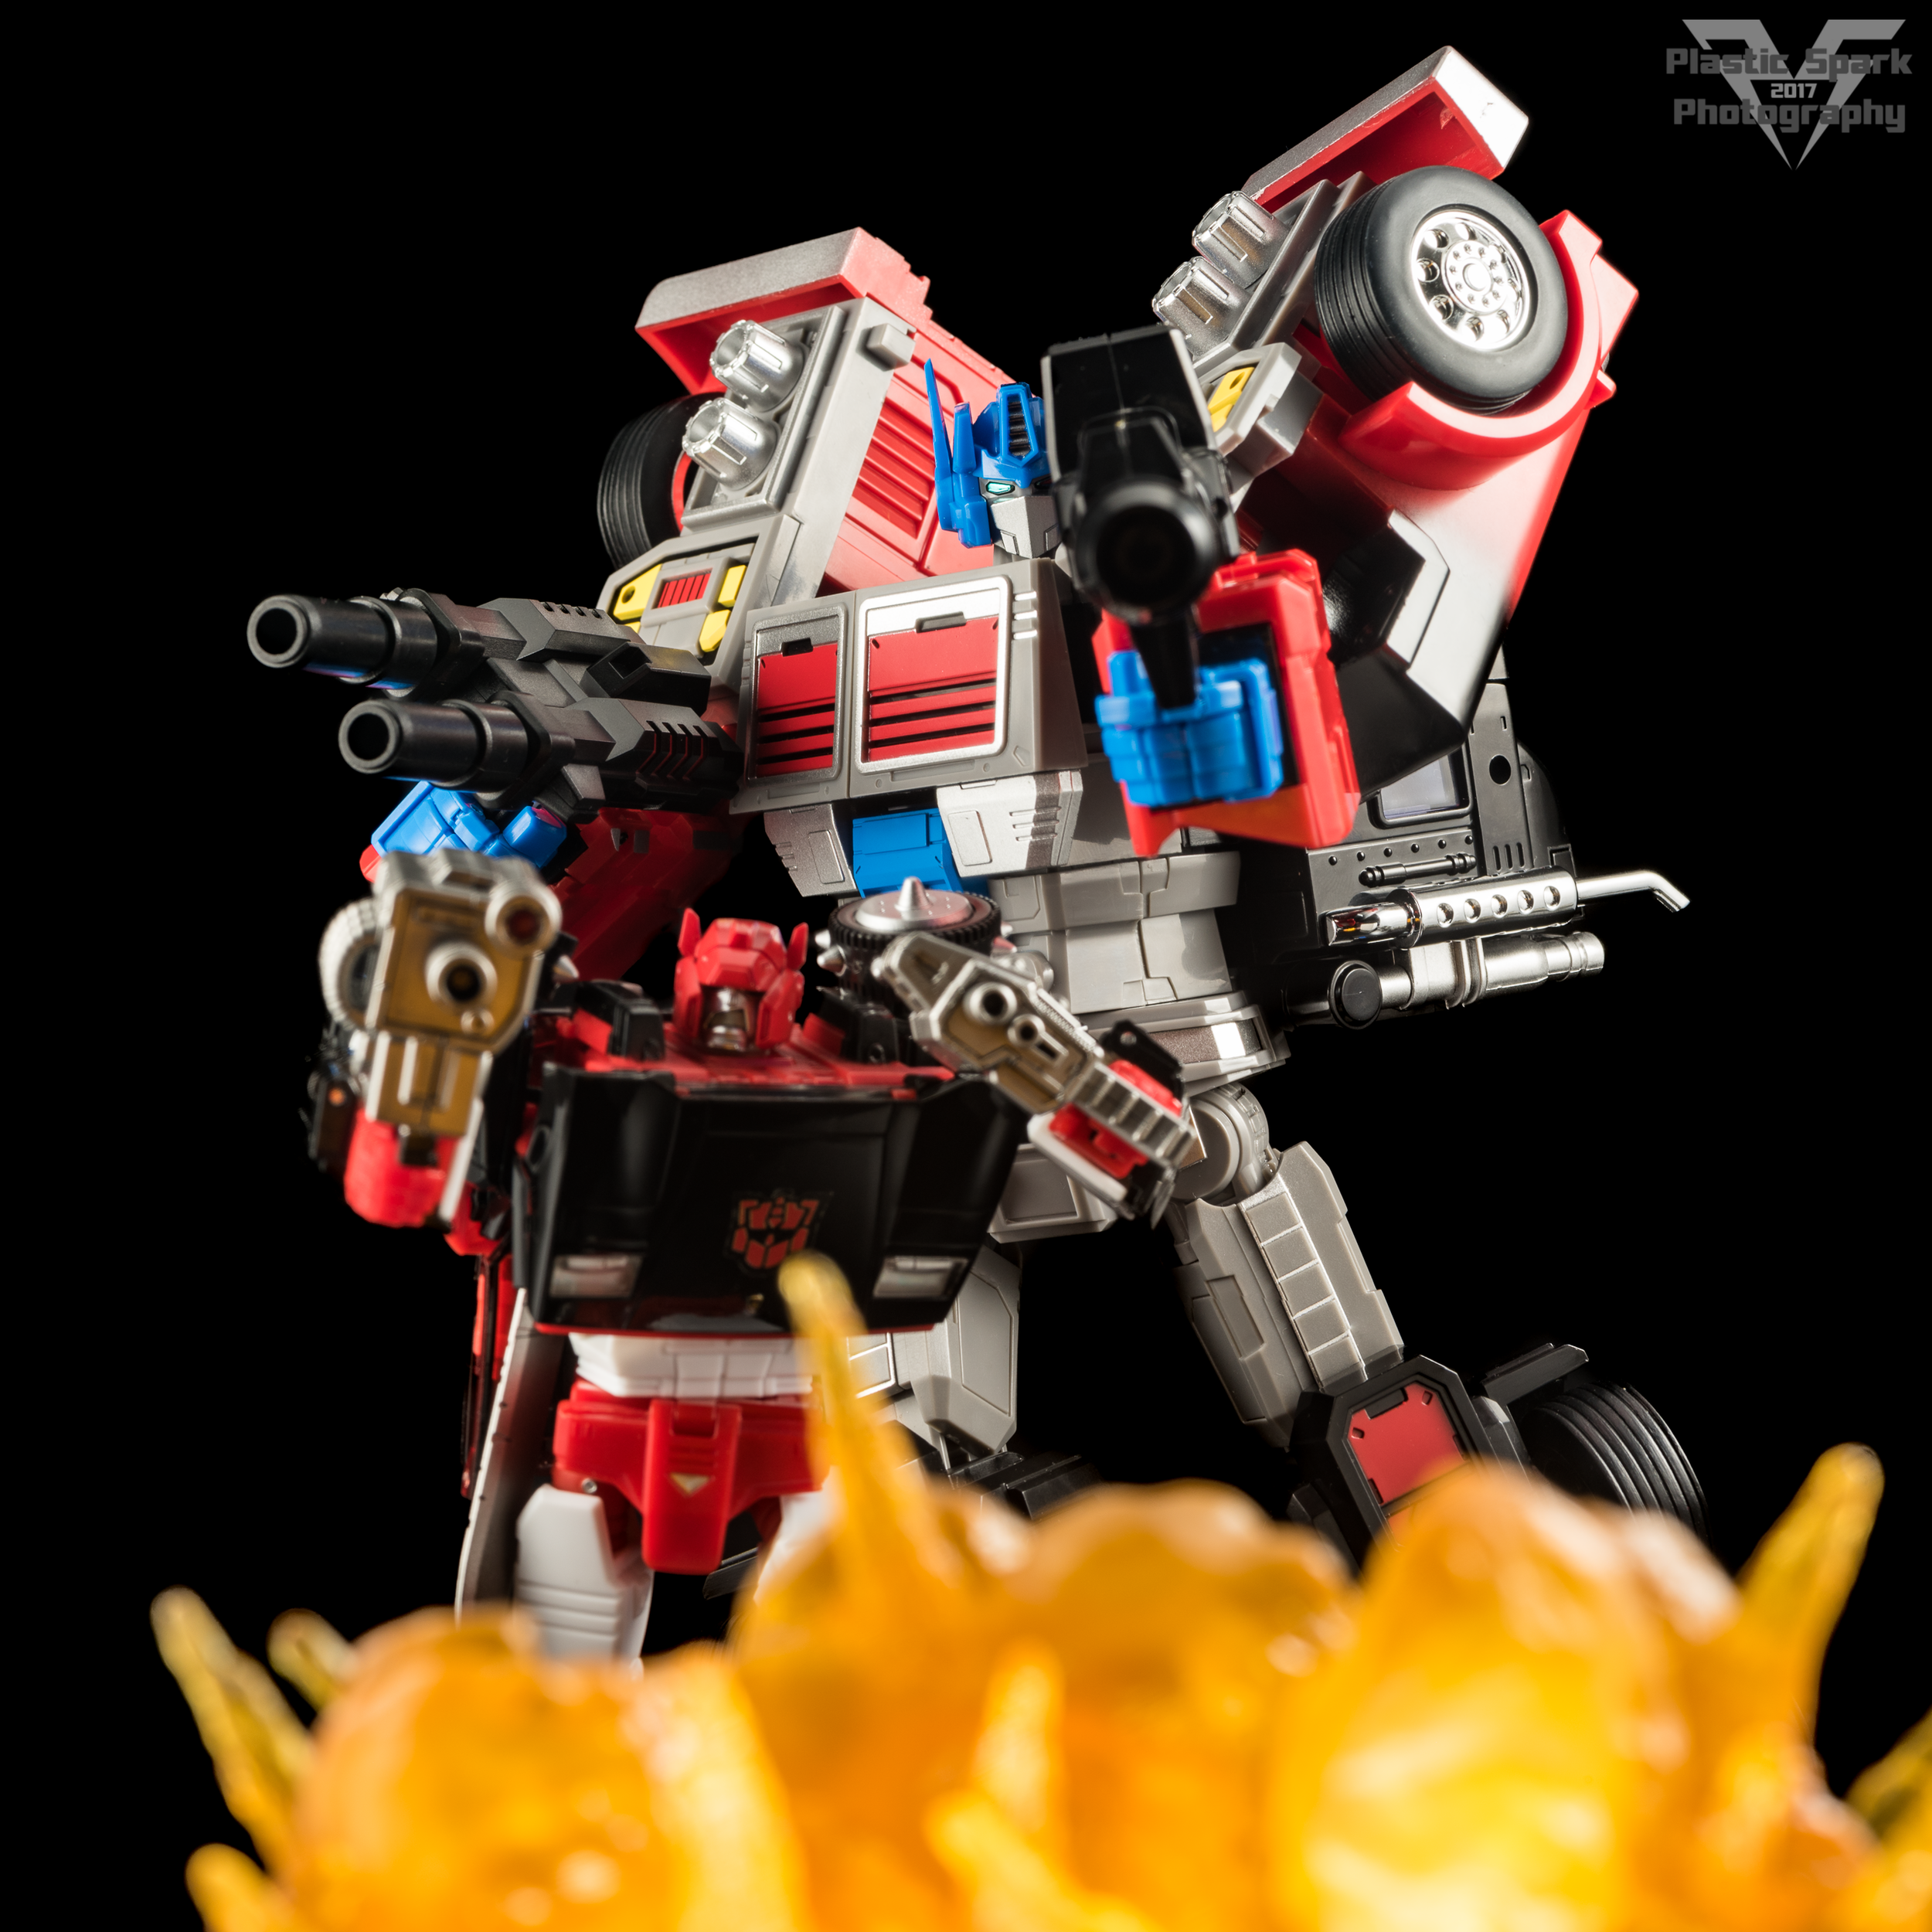 Fans-Hobby-MB-04-Gunfighter-II-(49-of-61).png